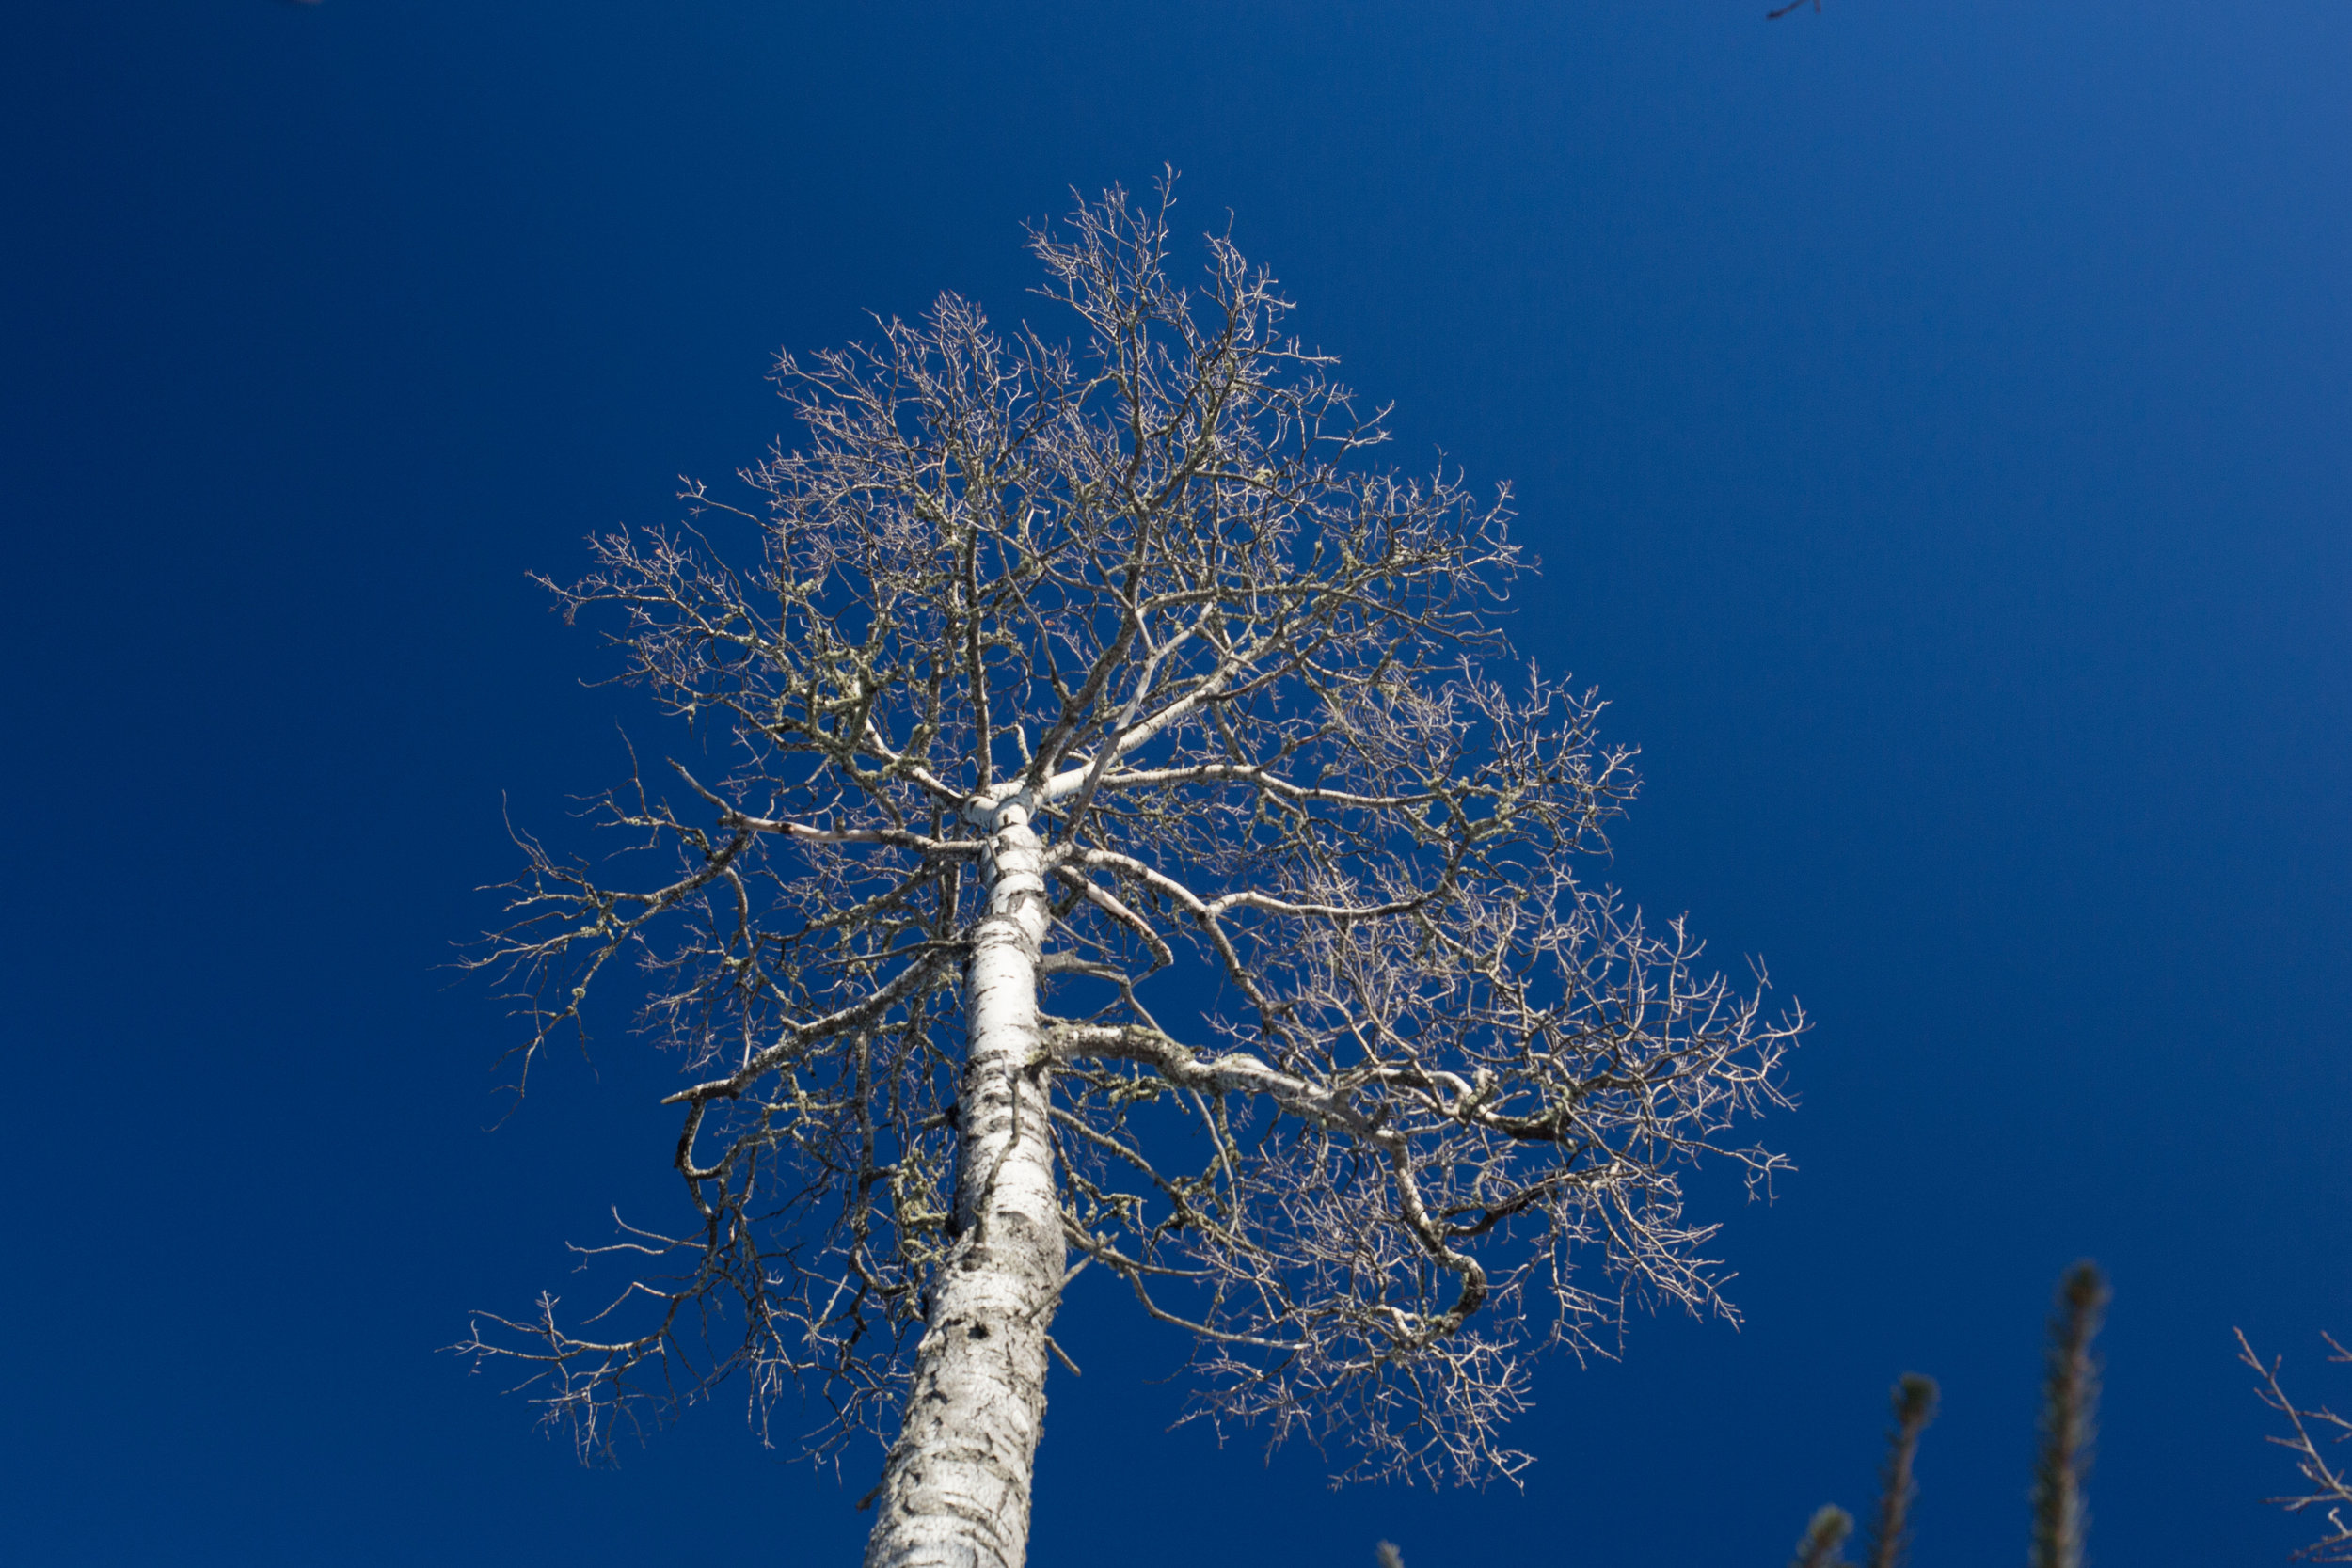 and a birch tree top...